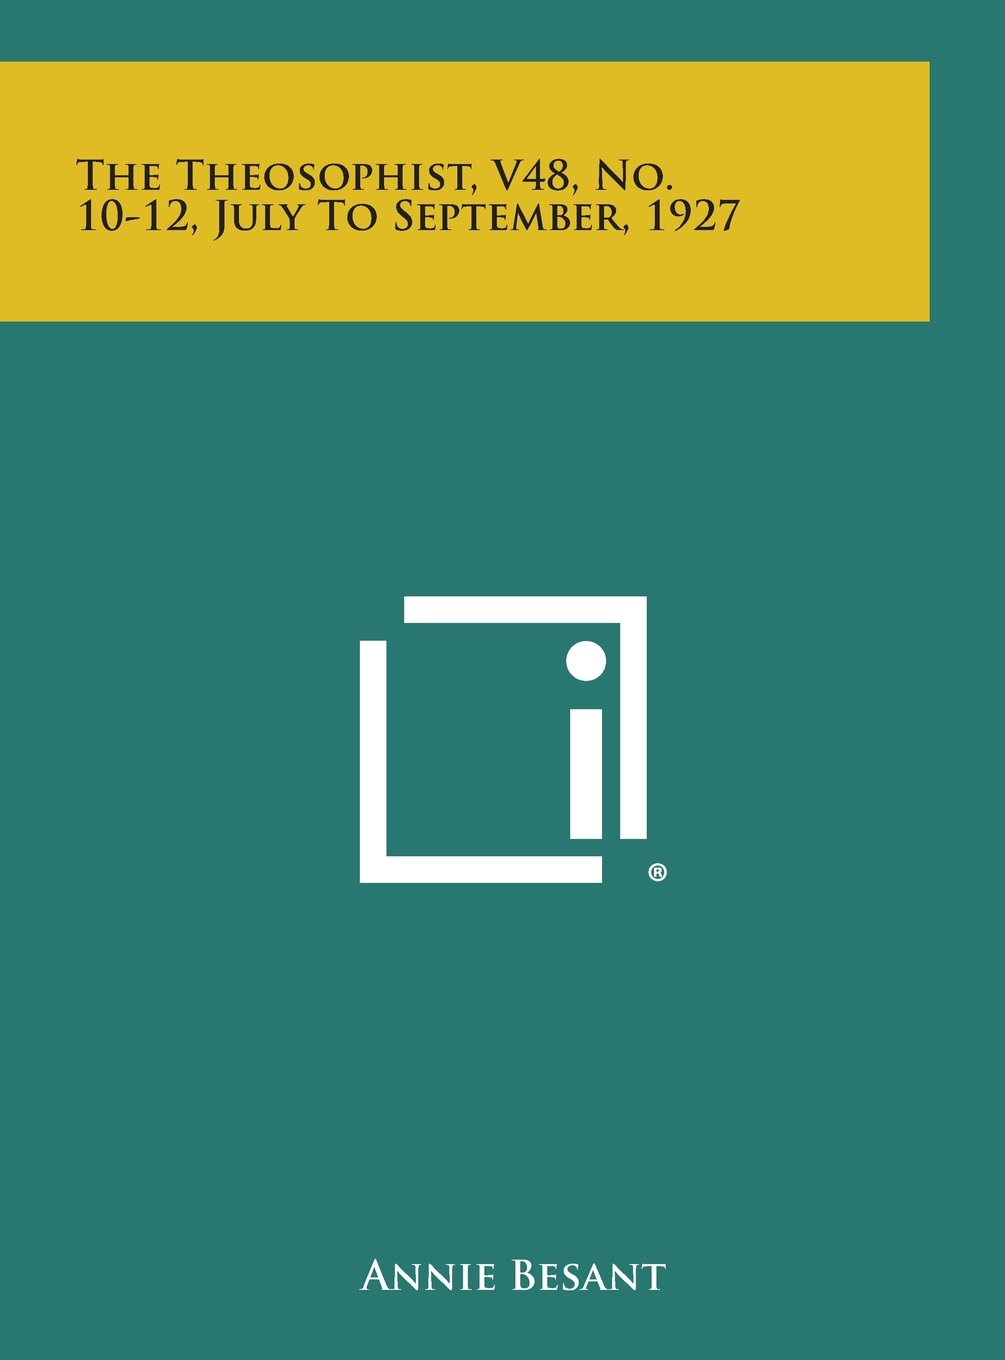 Download The Theosophist, V48, No. 10-12, July to September, 1927 PDF